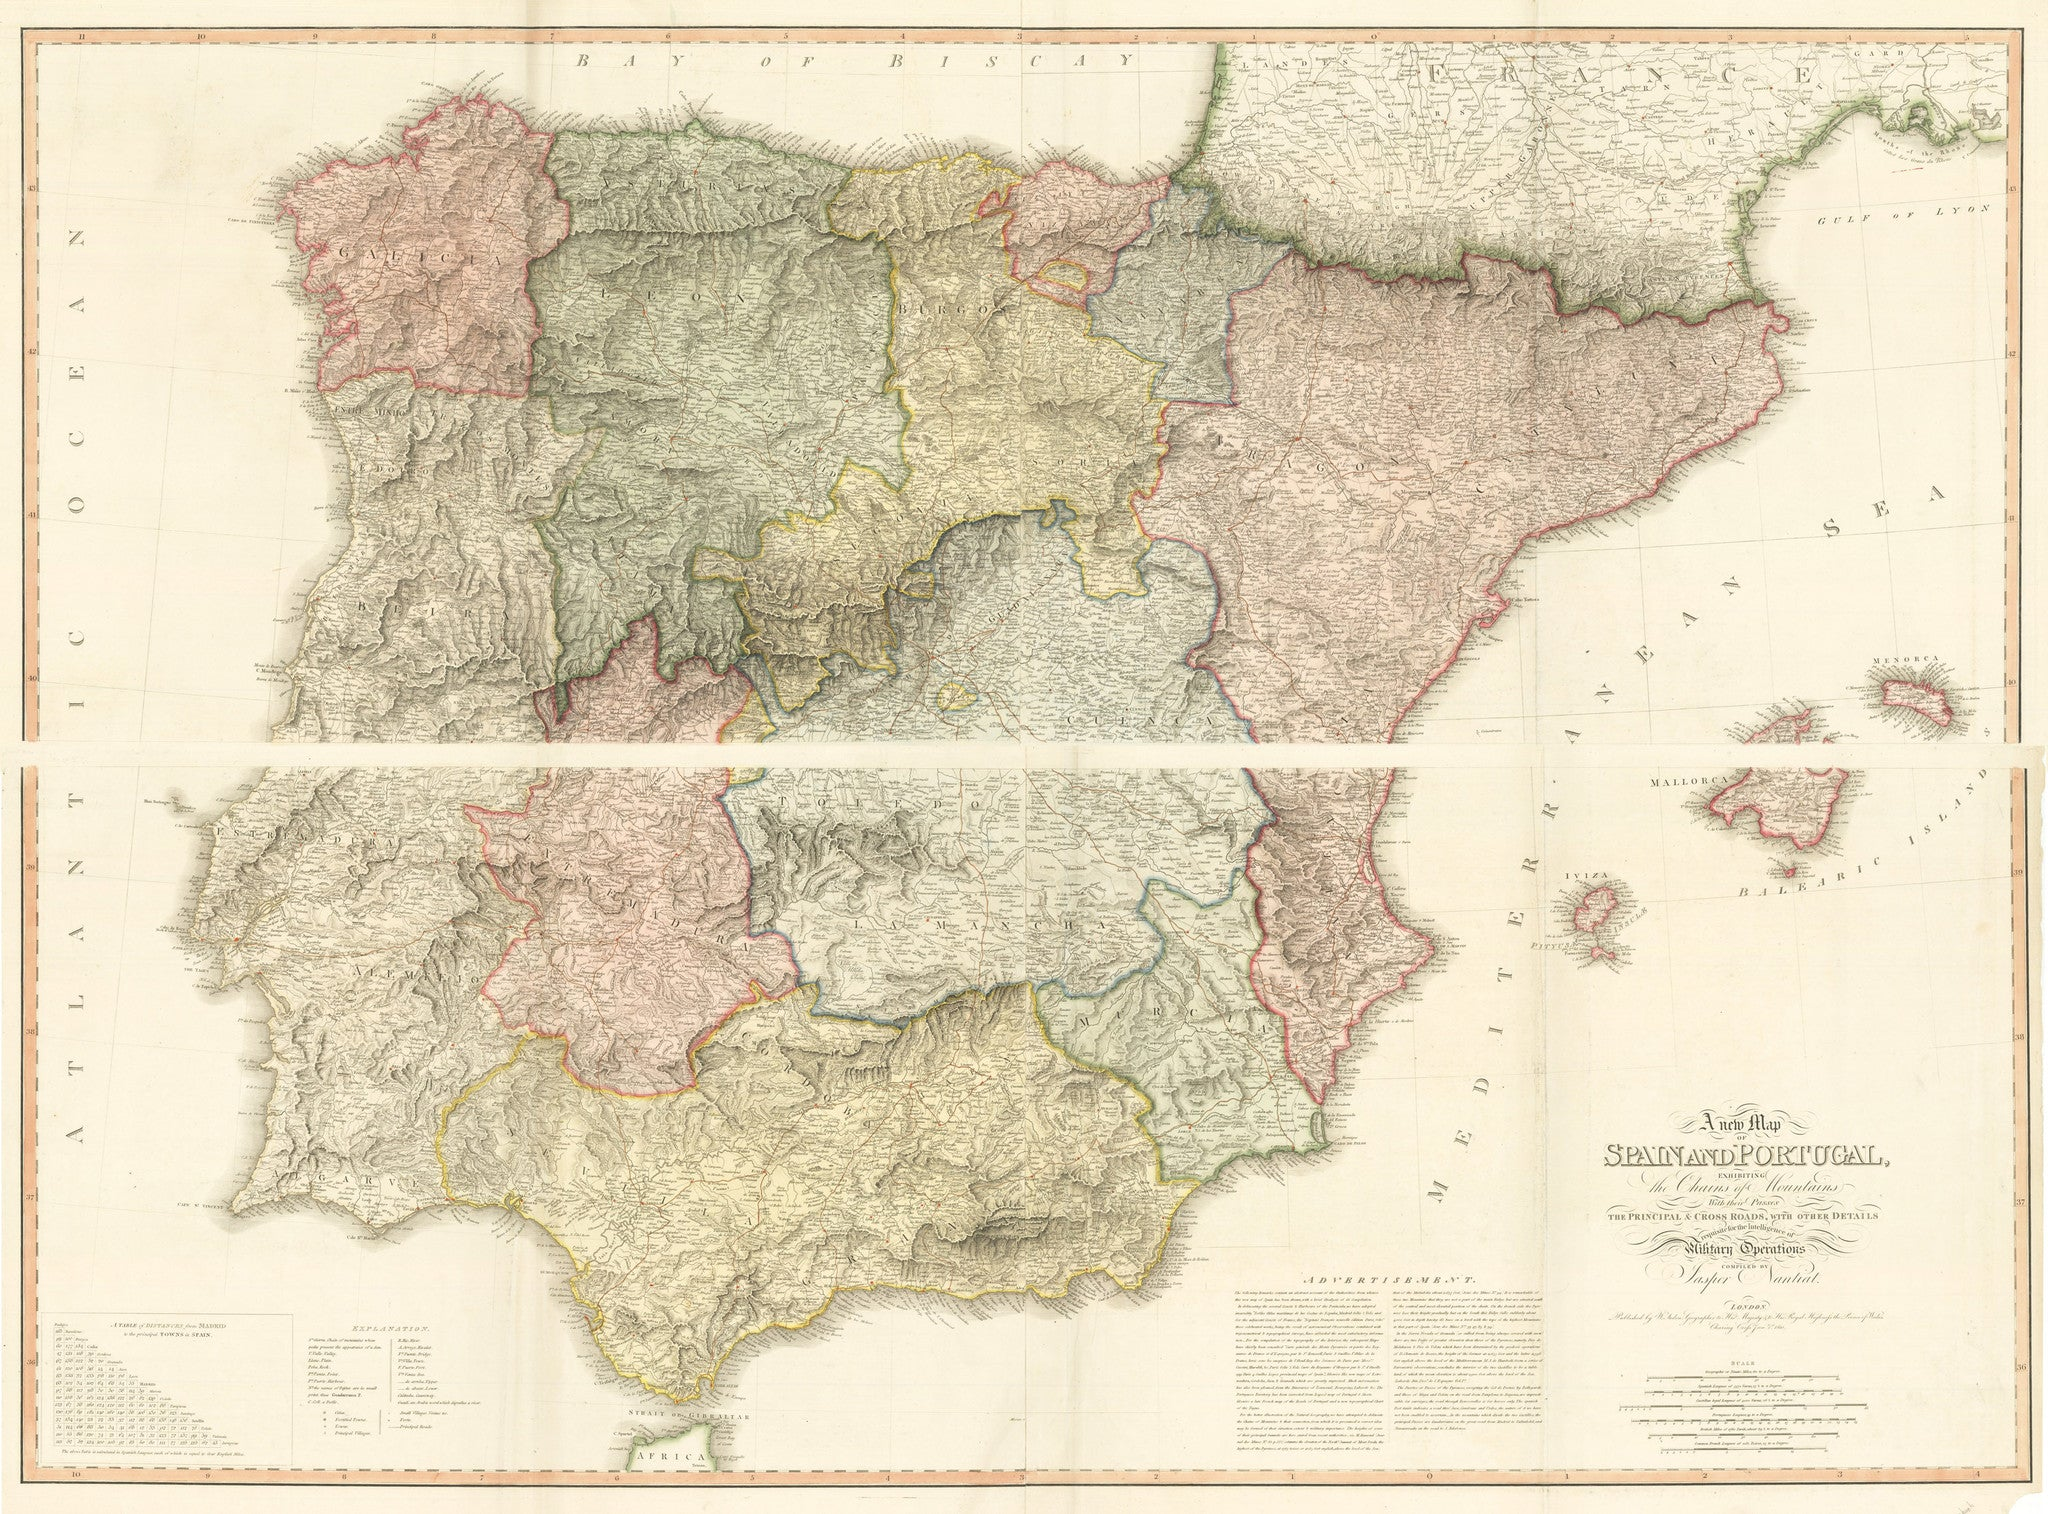 Map Of Spain Mountains.1810 A New Map Of Spain And Portugal Exhibiting The Chains Of Mountains With Their Passes The Principal Cross Roads